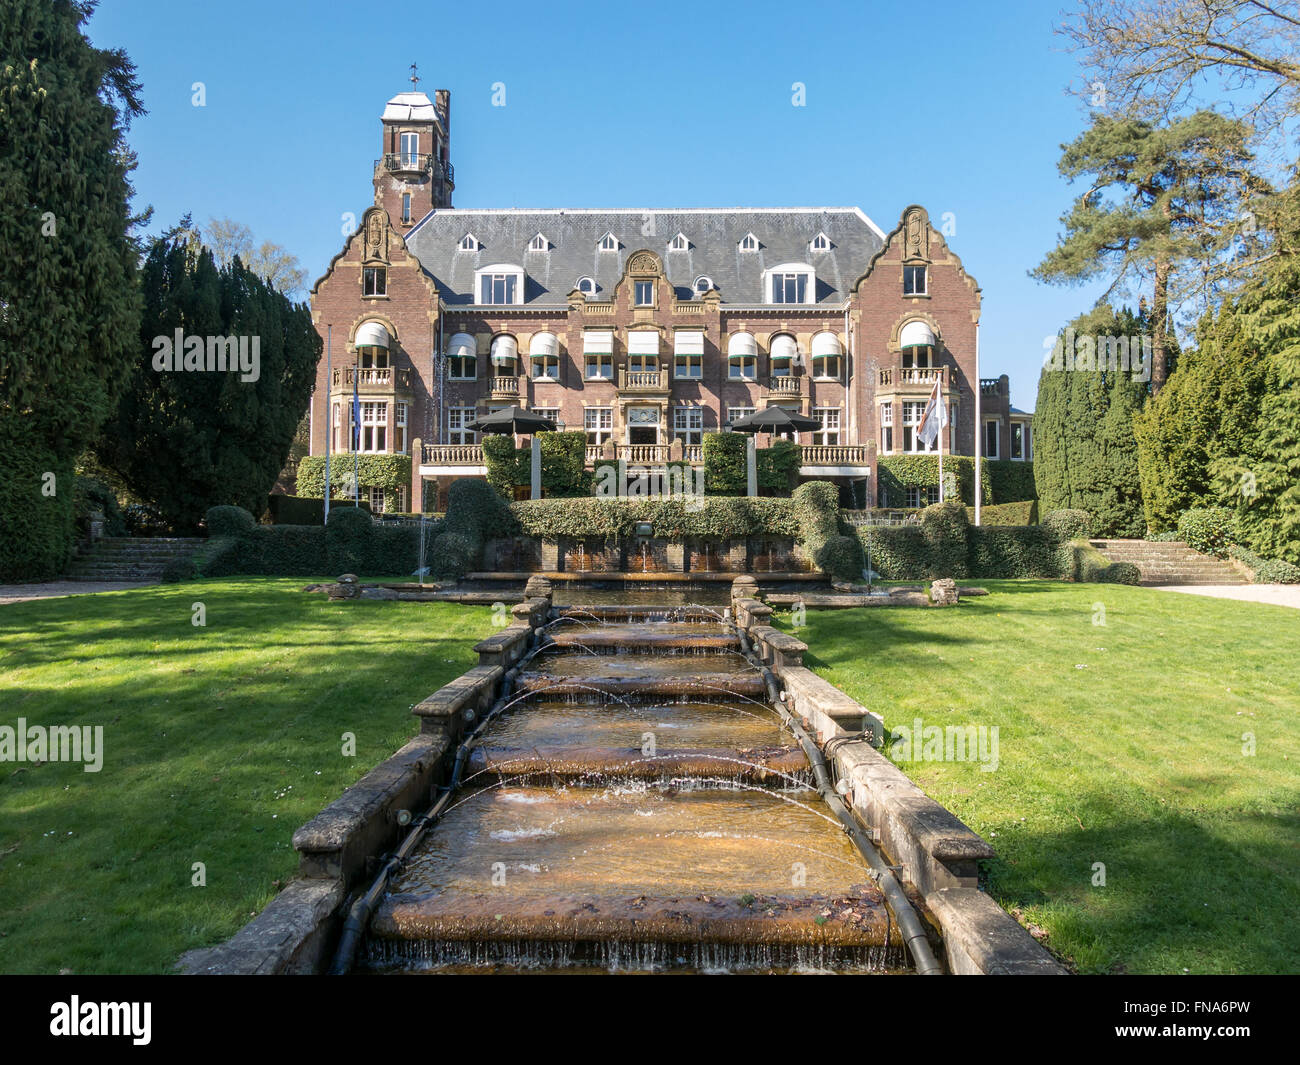 Hotel Castle De Hooge Vuursche between Hilversum and Baarn in the Gooi District, Netherlands - Stock Image